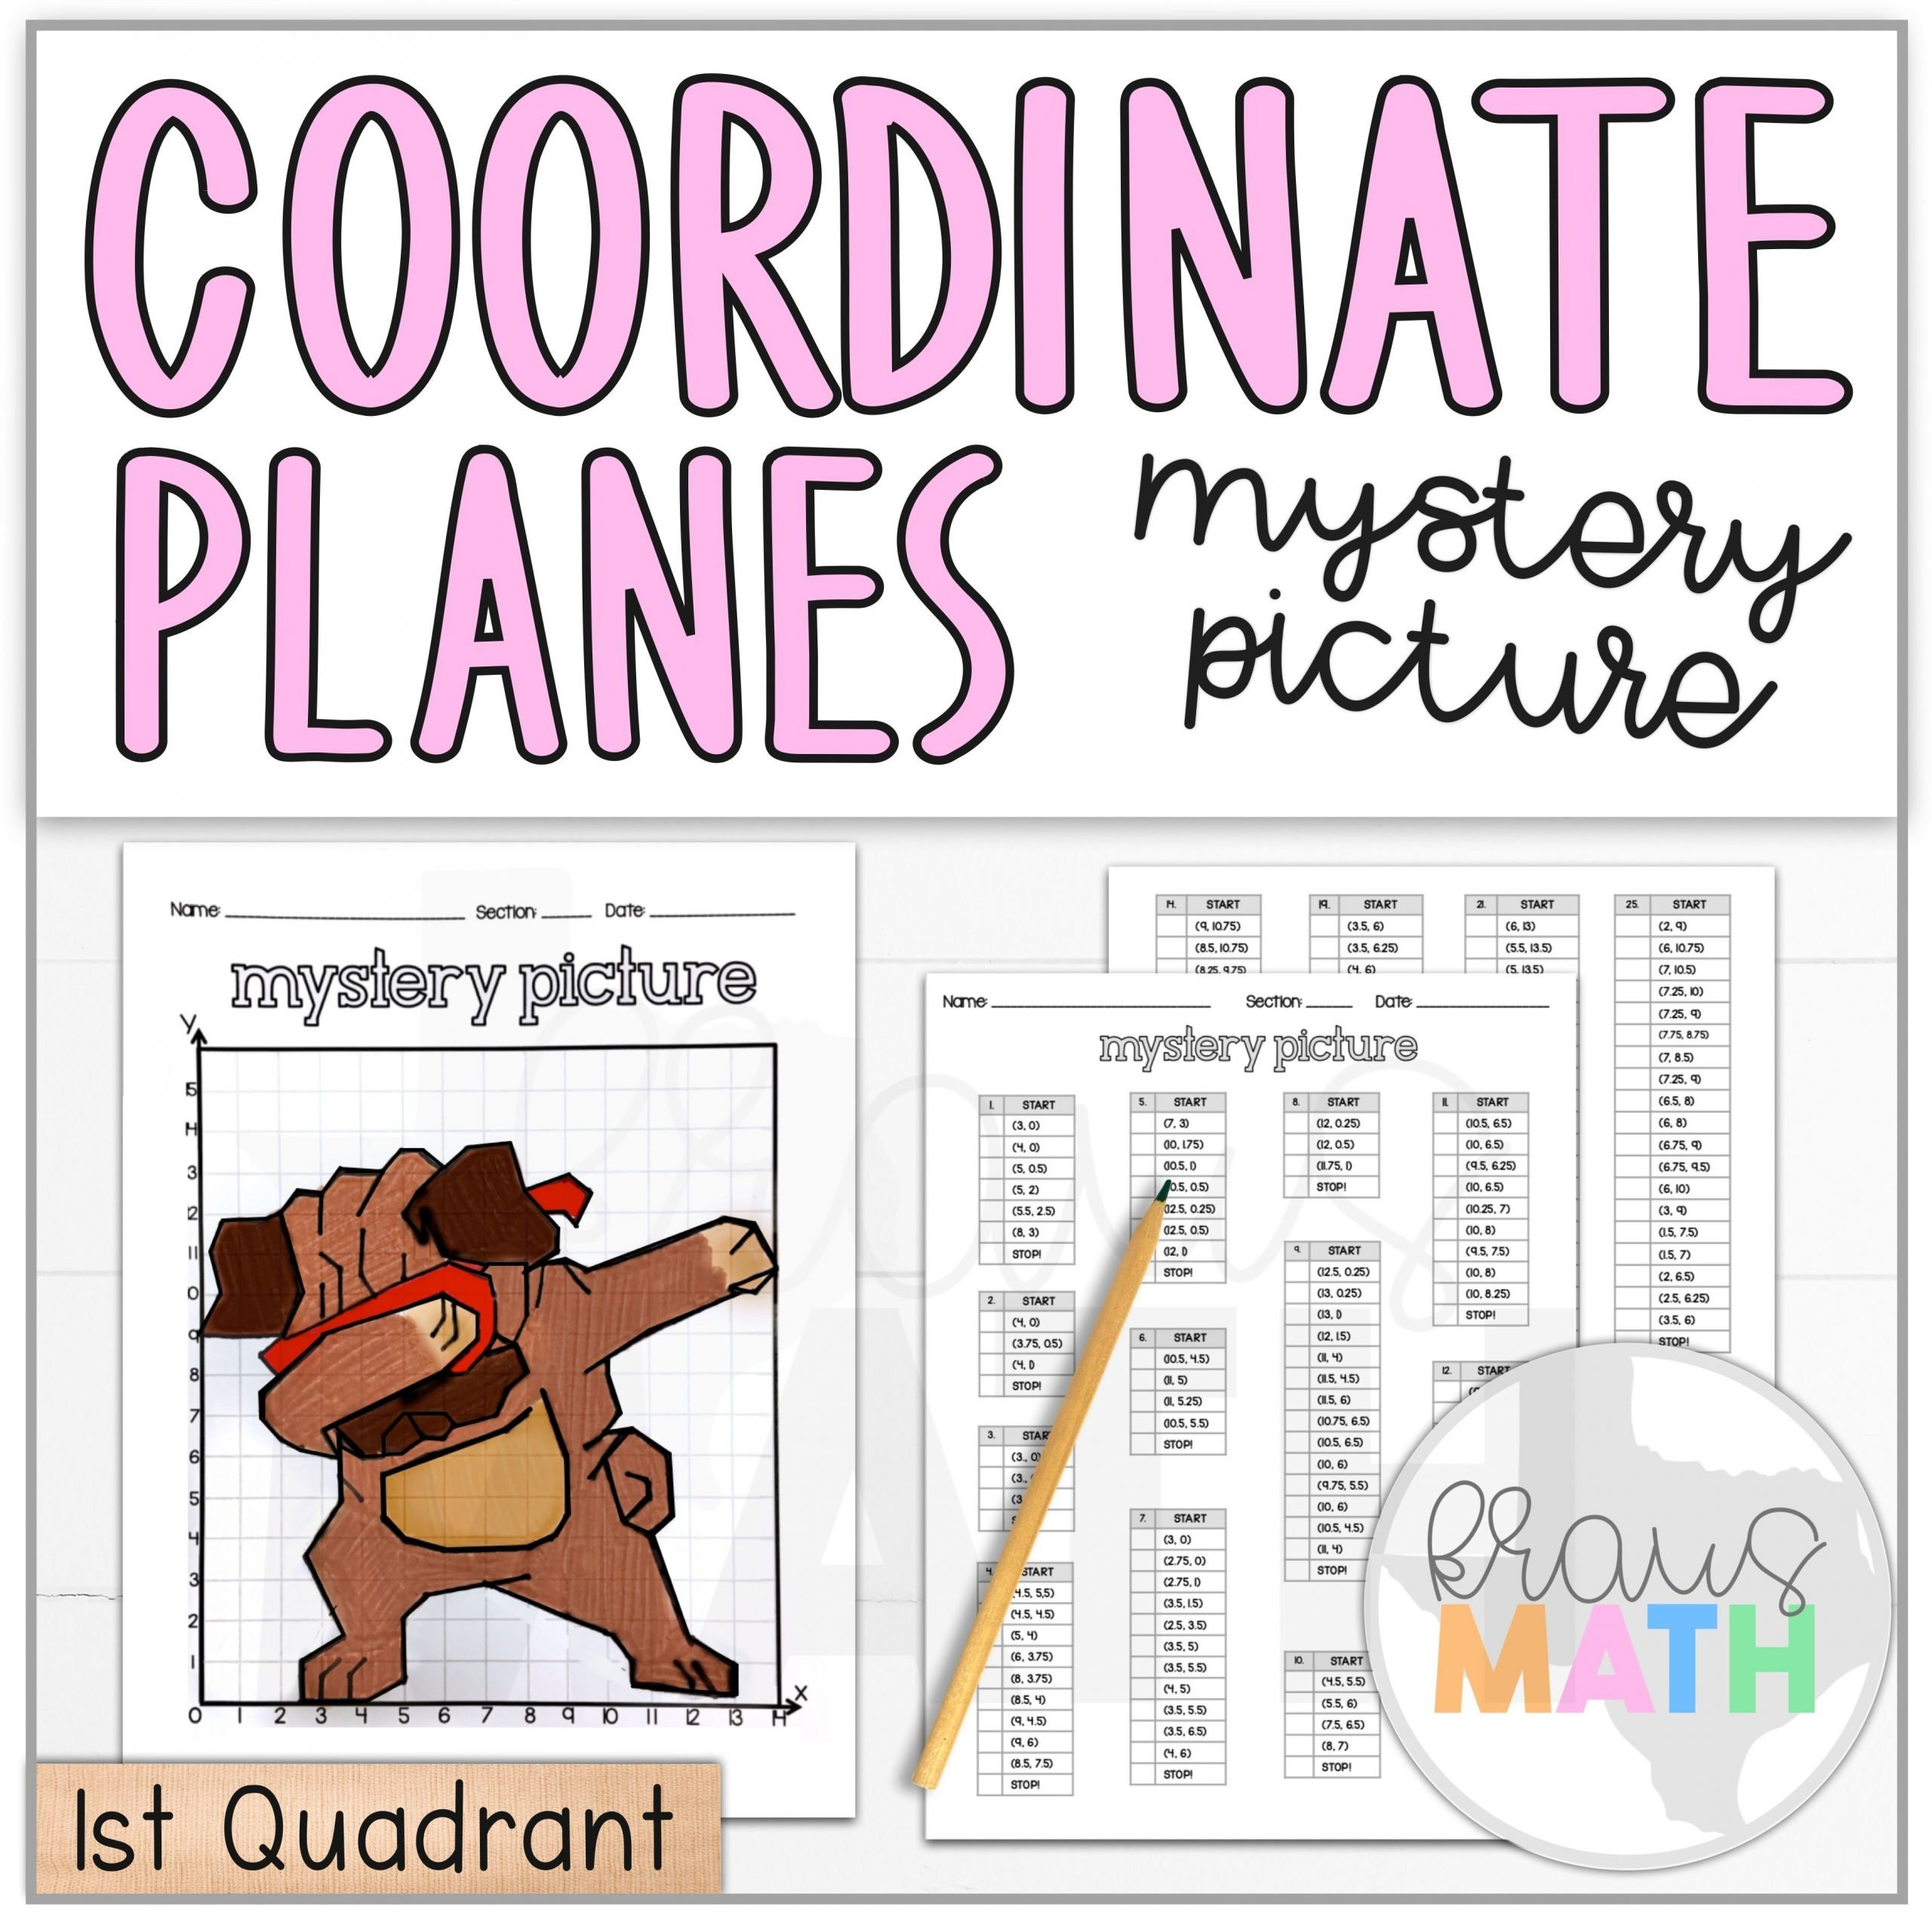 Fun Coordinate Plane Worksheets Pug Dab Coordinate Plane Mystery Picture 1st Quadrant